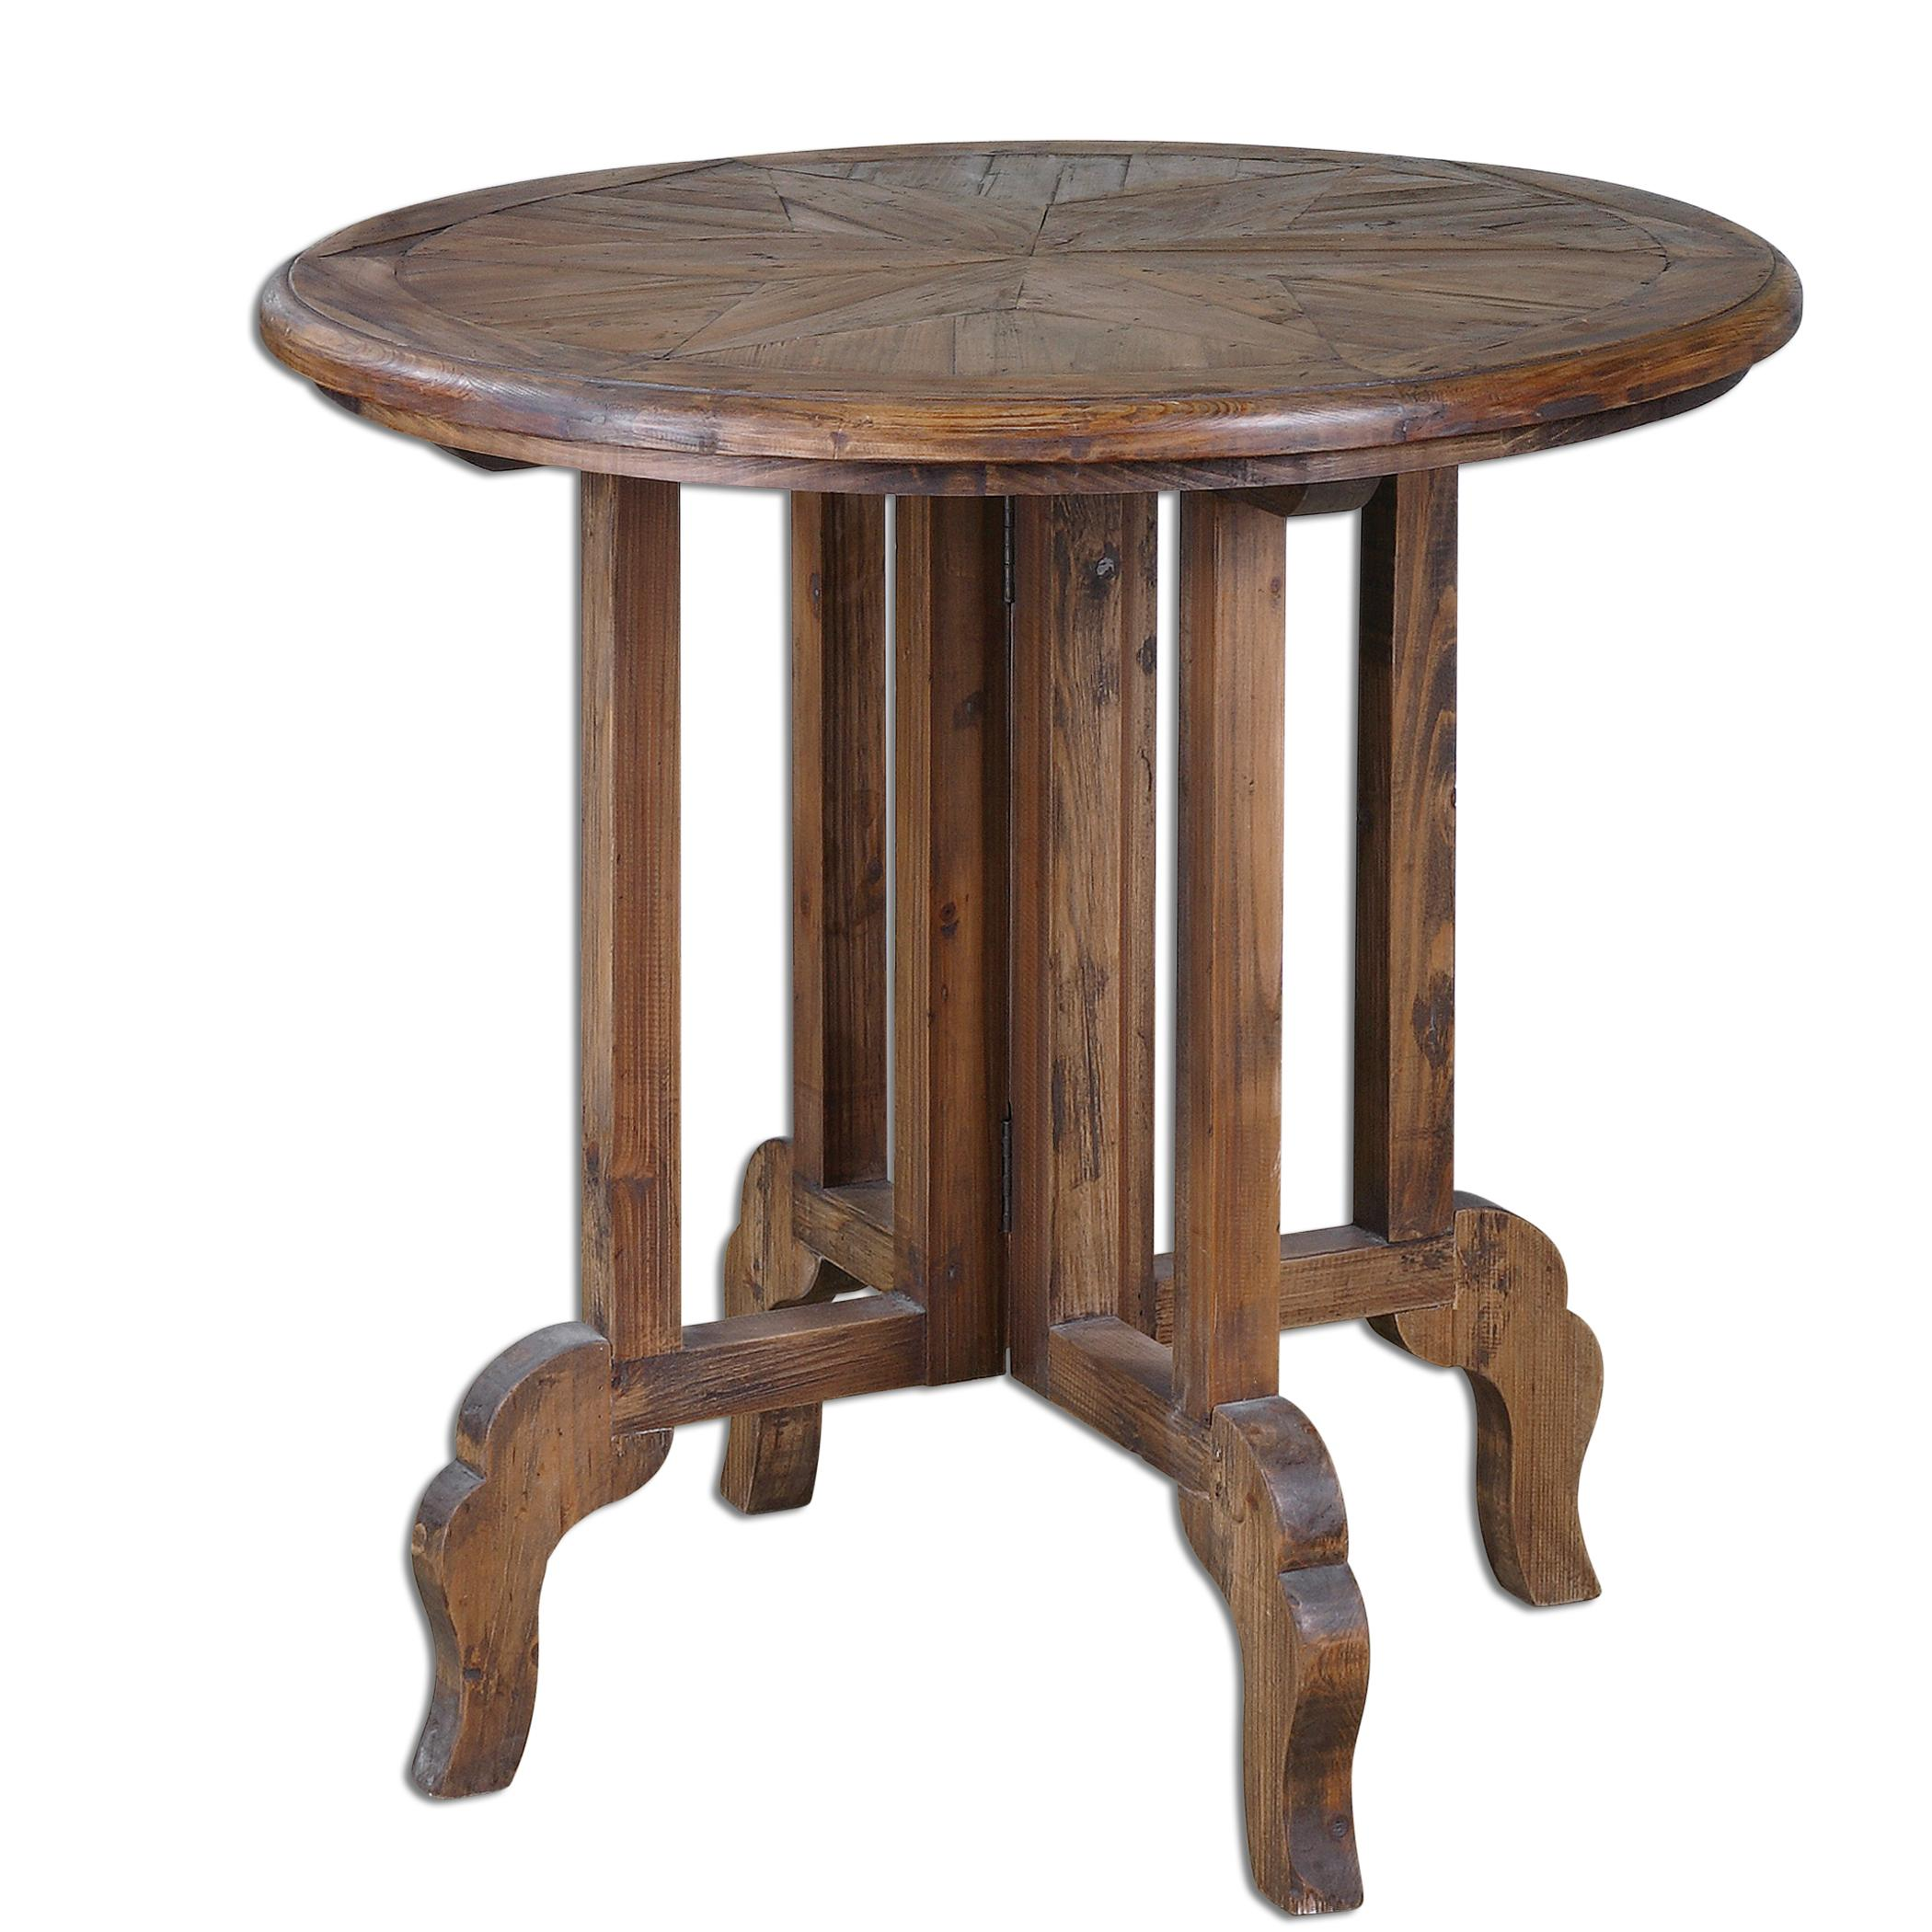 Accent Furniture - Occasional Tables Imber Round Accent Table by Uttermost at Del Sol Furniture